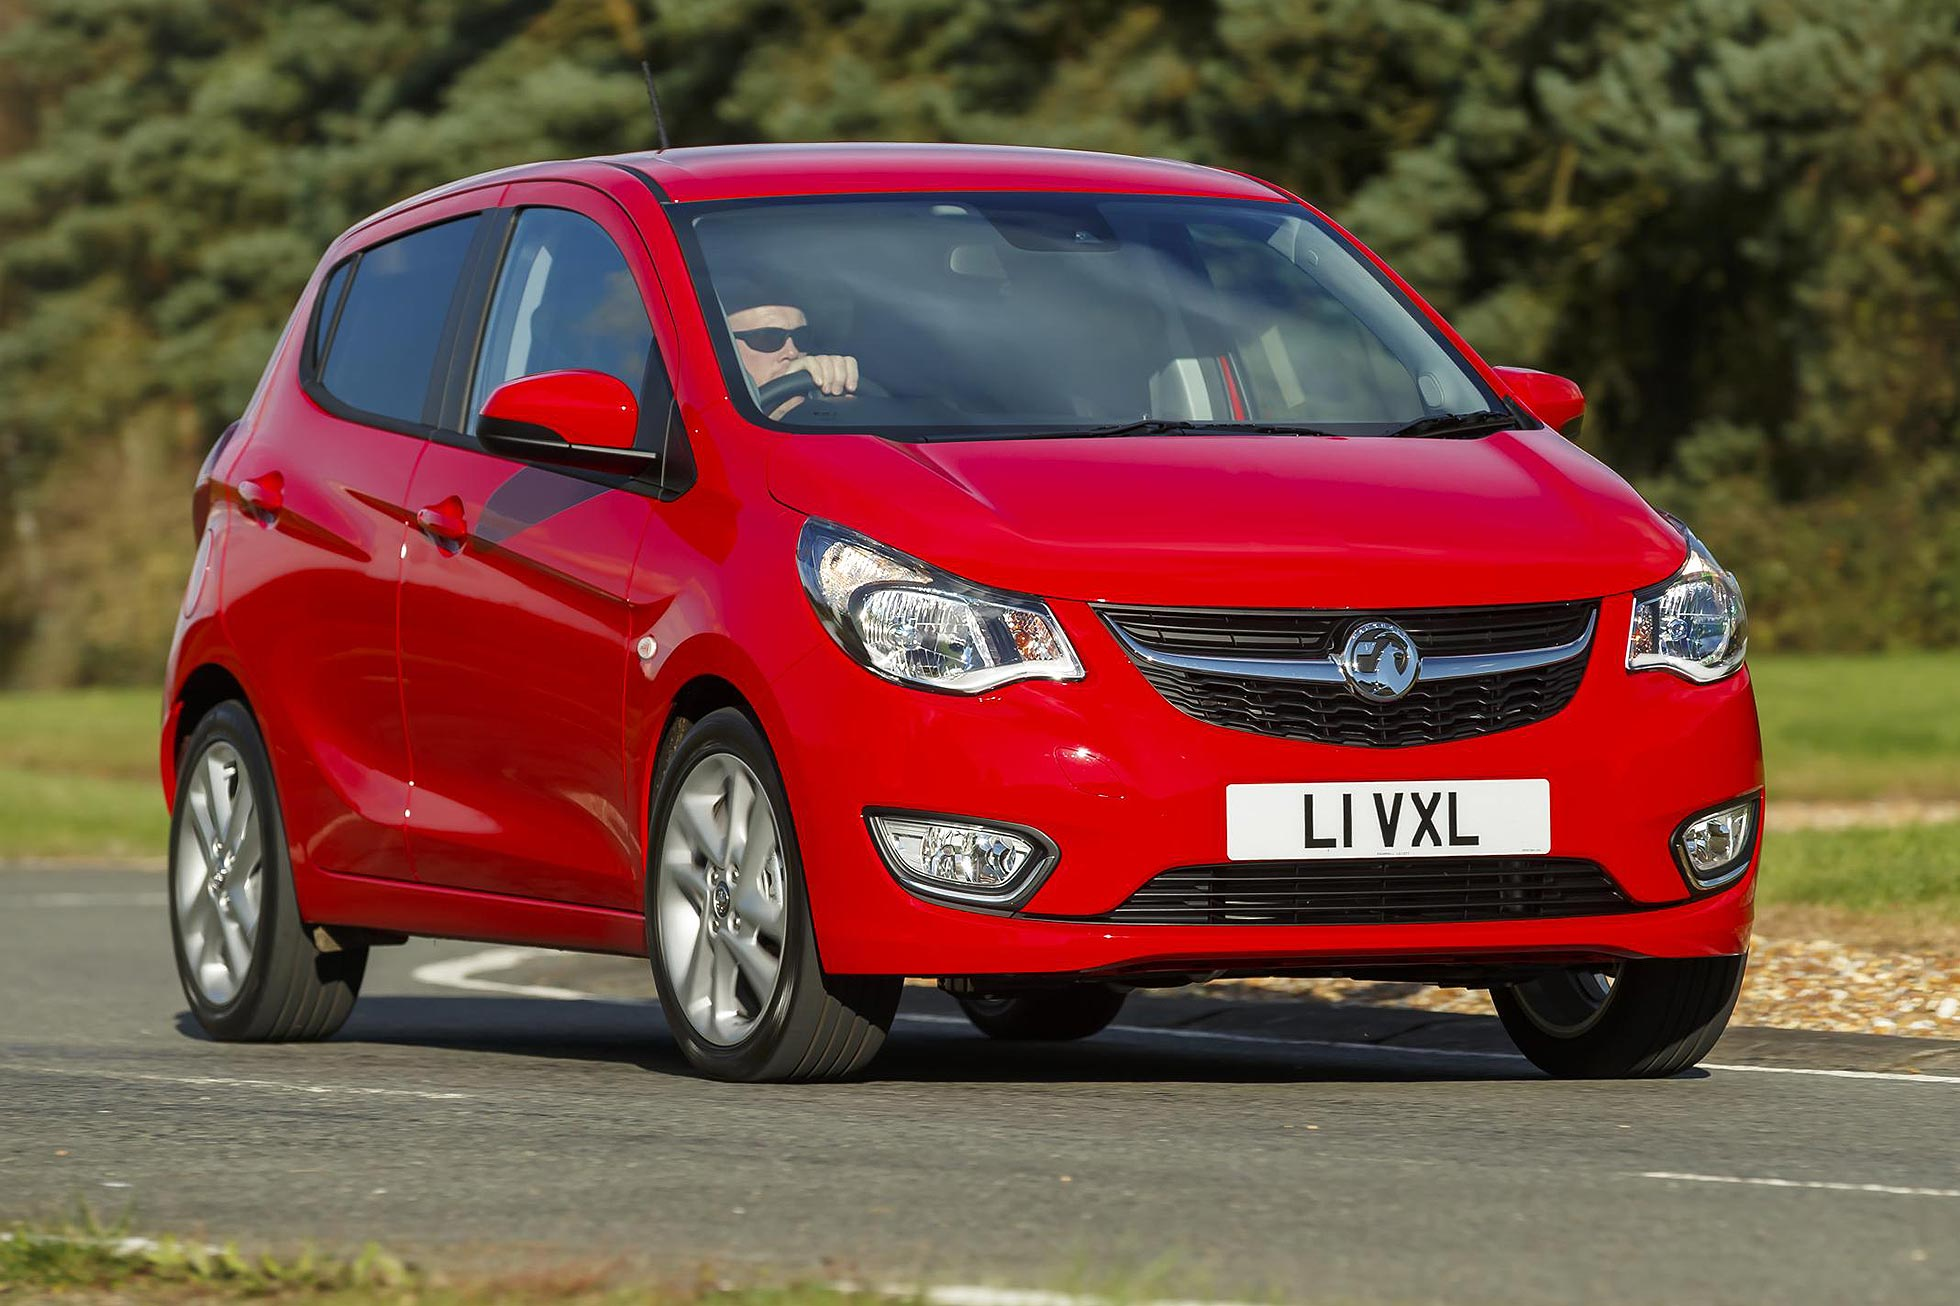 vauxhall viva revealed ahead of spring 2015 launch. Black Bedroom Furniture Sets. Home Design Ideas